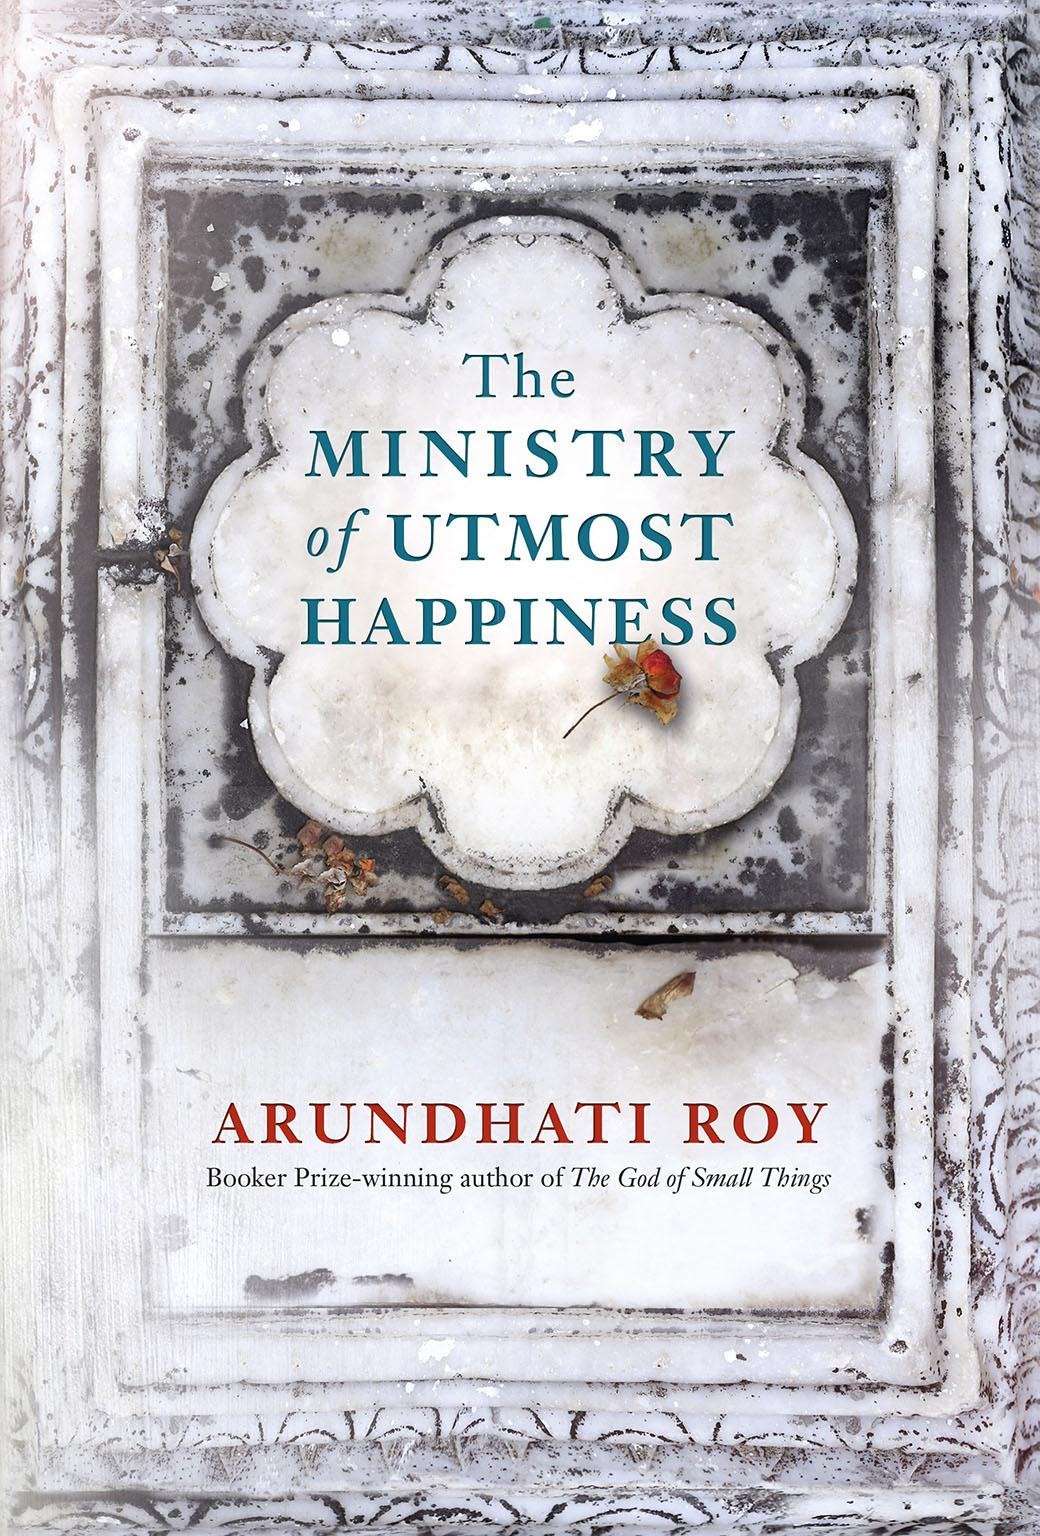 The Ministry of Utmost Happiness by Arundhati Roy, book review: A mesmerising labyrinth worth the wait